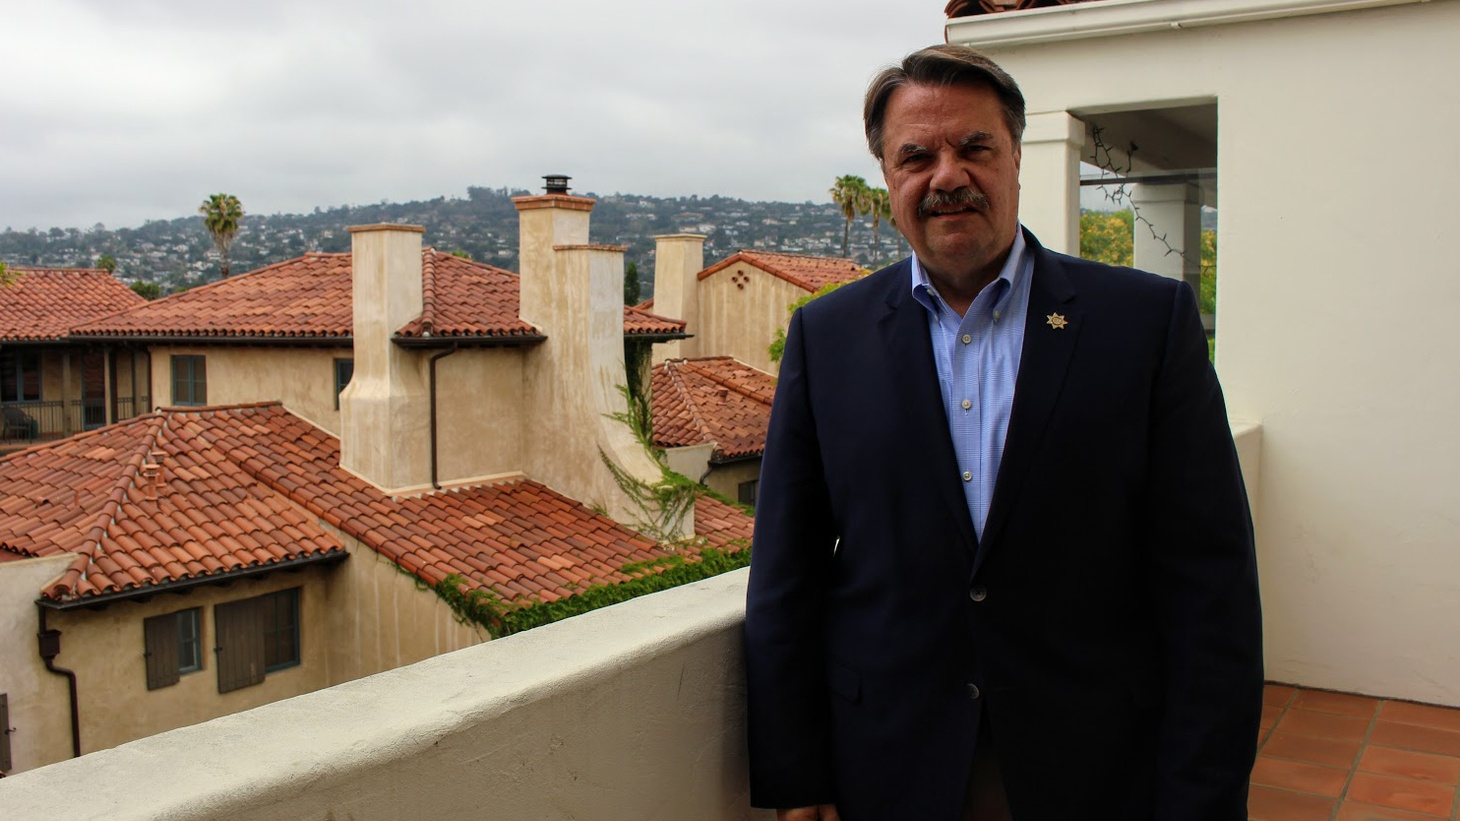 In Santa Barbara, one of the most competitive primary races is for County Sheriff.